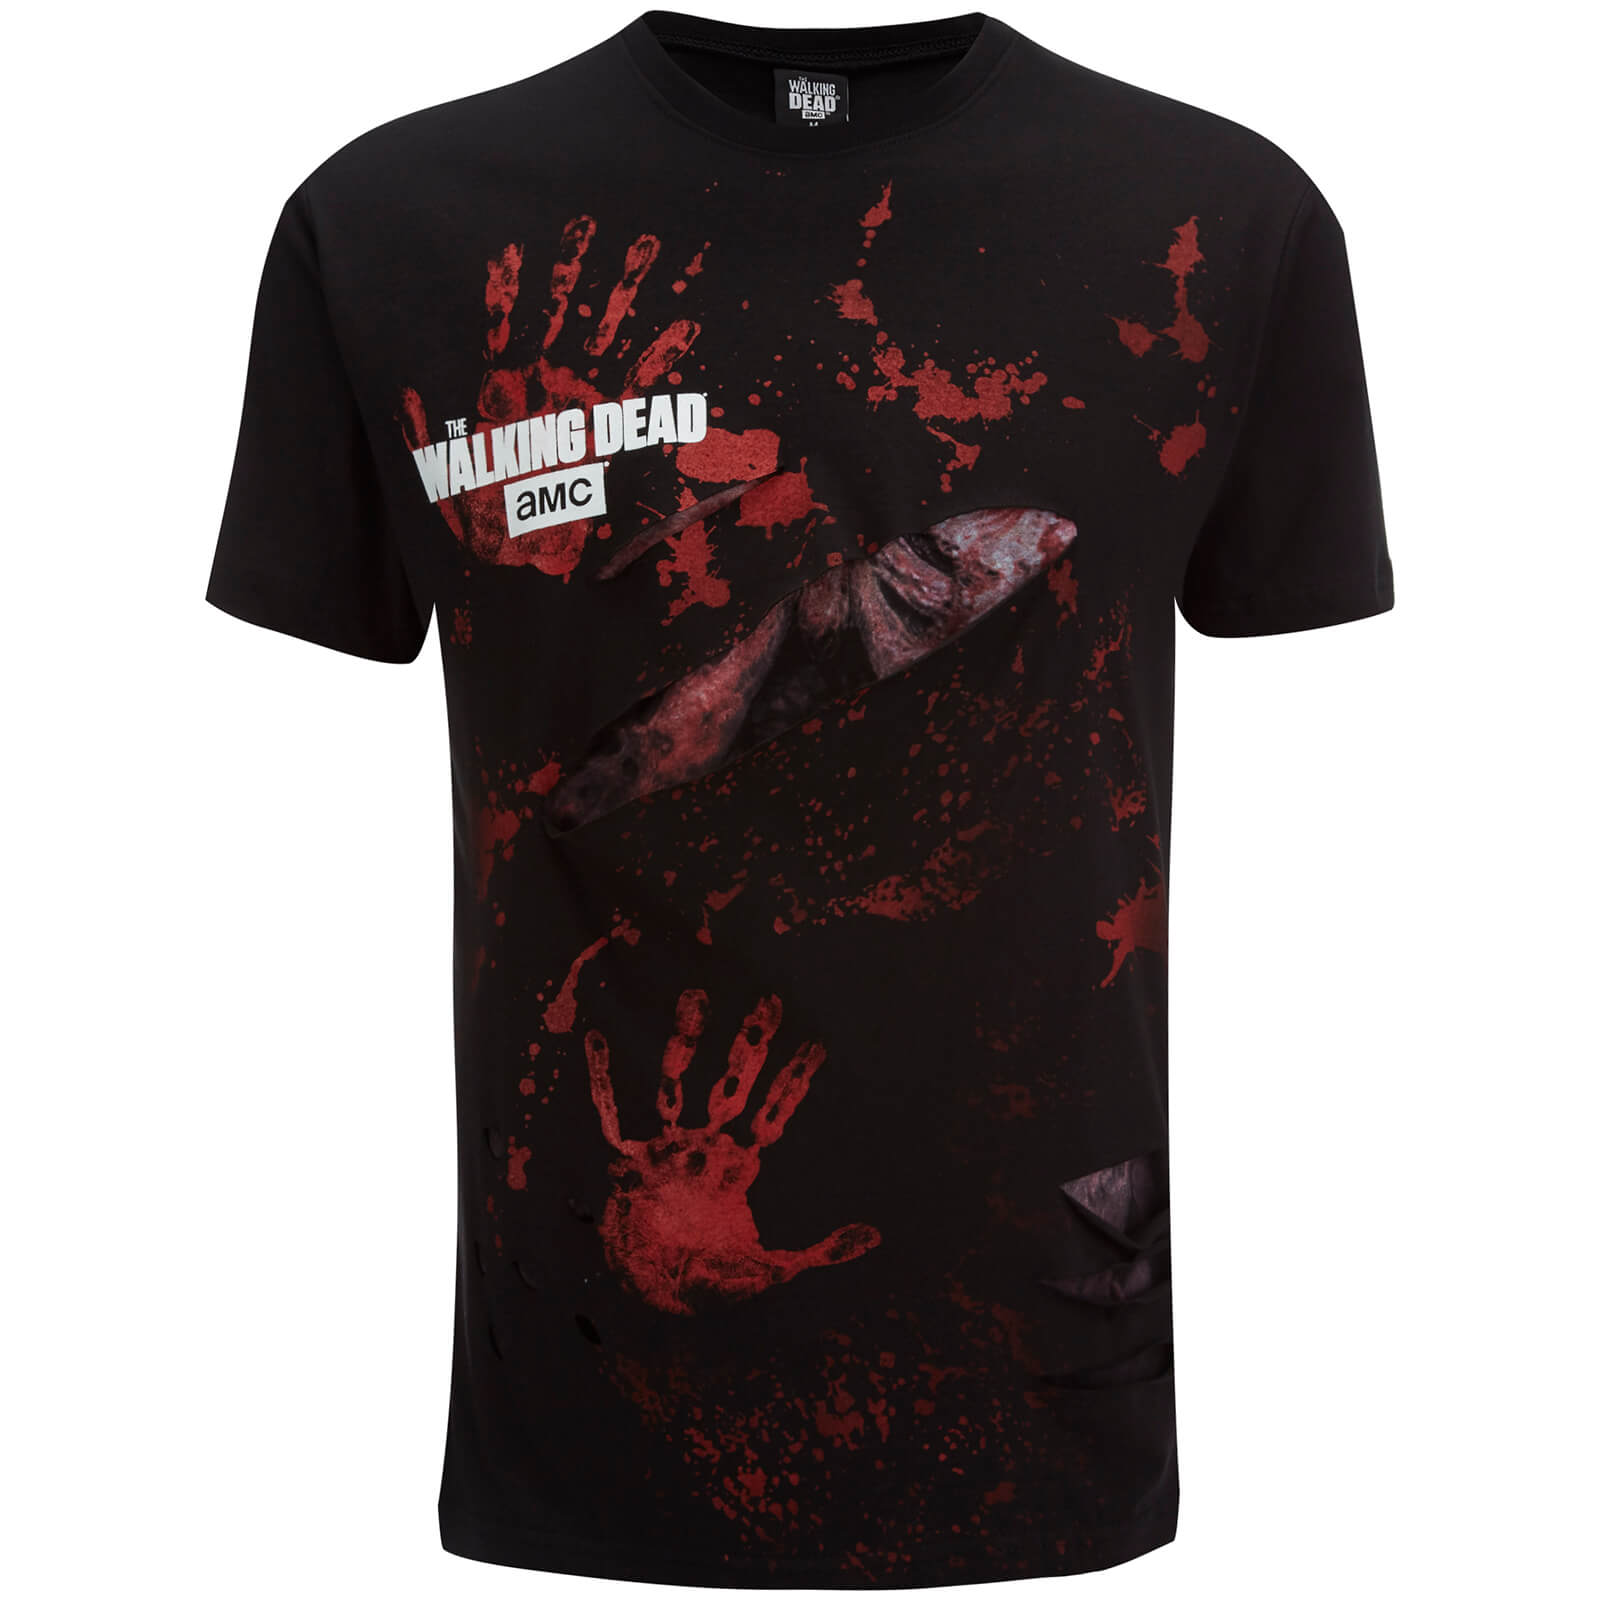 T-Shirt Homme Spiral Walking Dead Rick All Infected -Noir